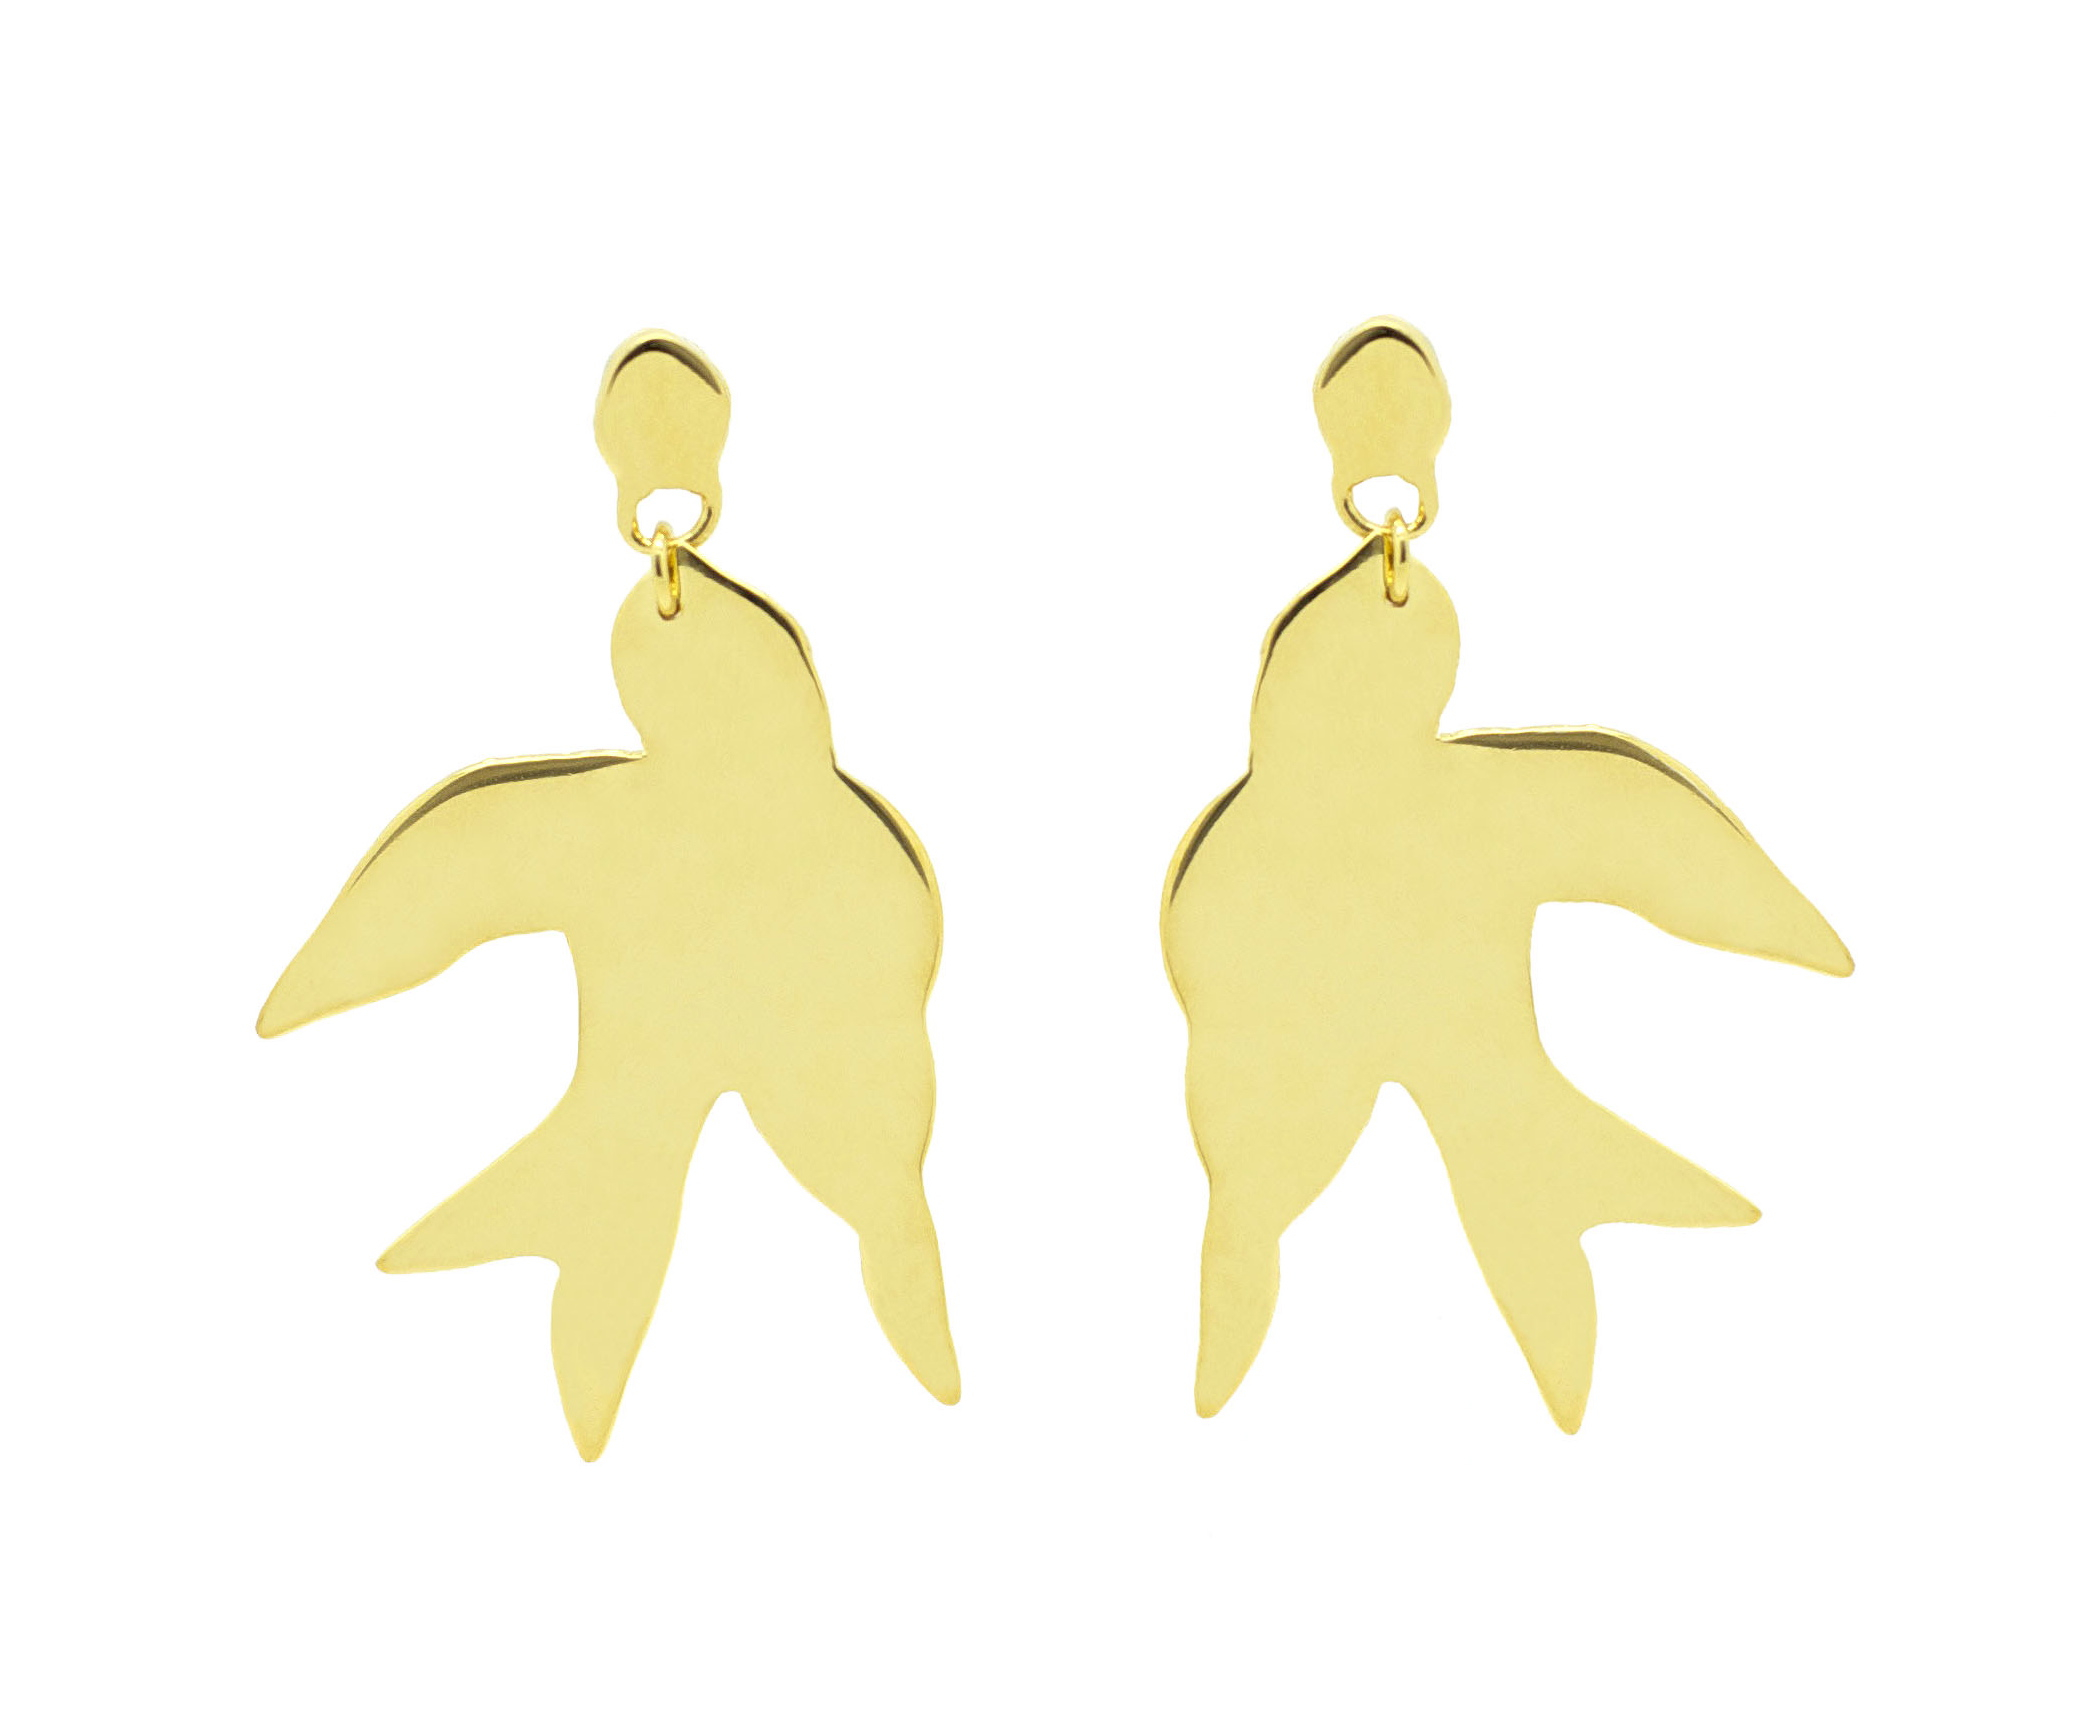 Soaring Bird Earrings